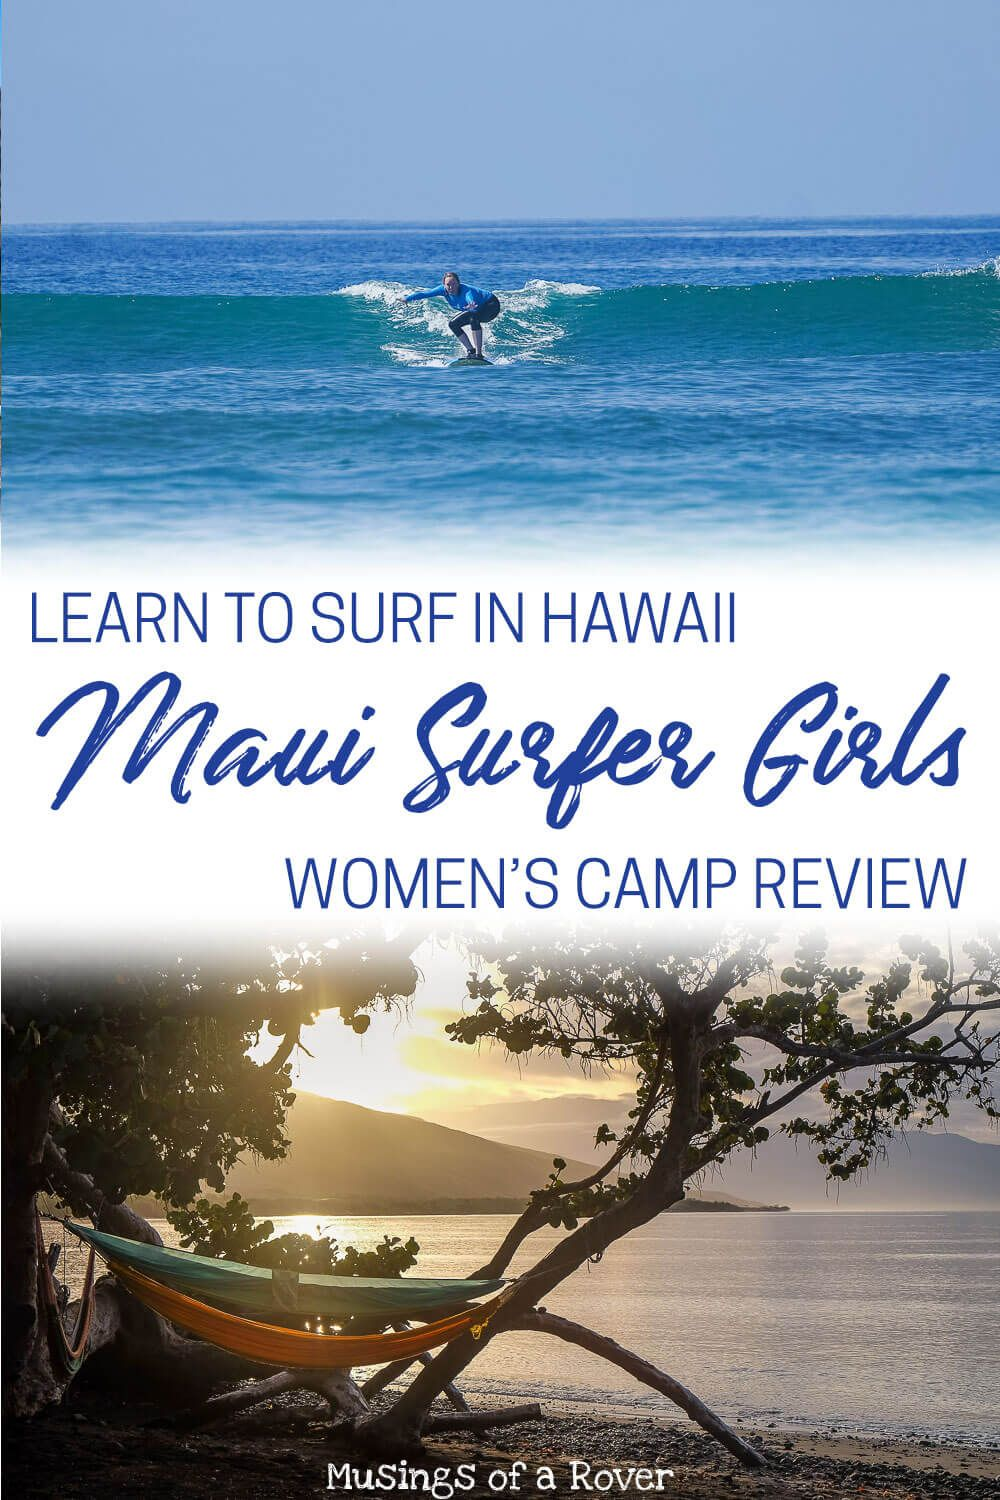 Want to spend a week in Maui learning to surf? This women's surf camp was one of the best weeks of my life. The surf retreat includes 5 days of surfing with professional instructors, delicious food, cabins that open onto the beach, and additional activities like hiking, yoga, massage, sailing tours, and more.